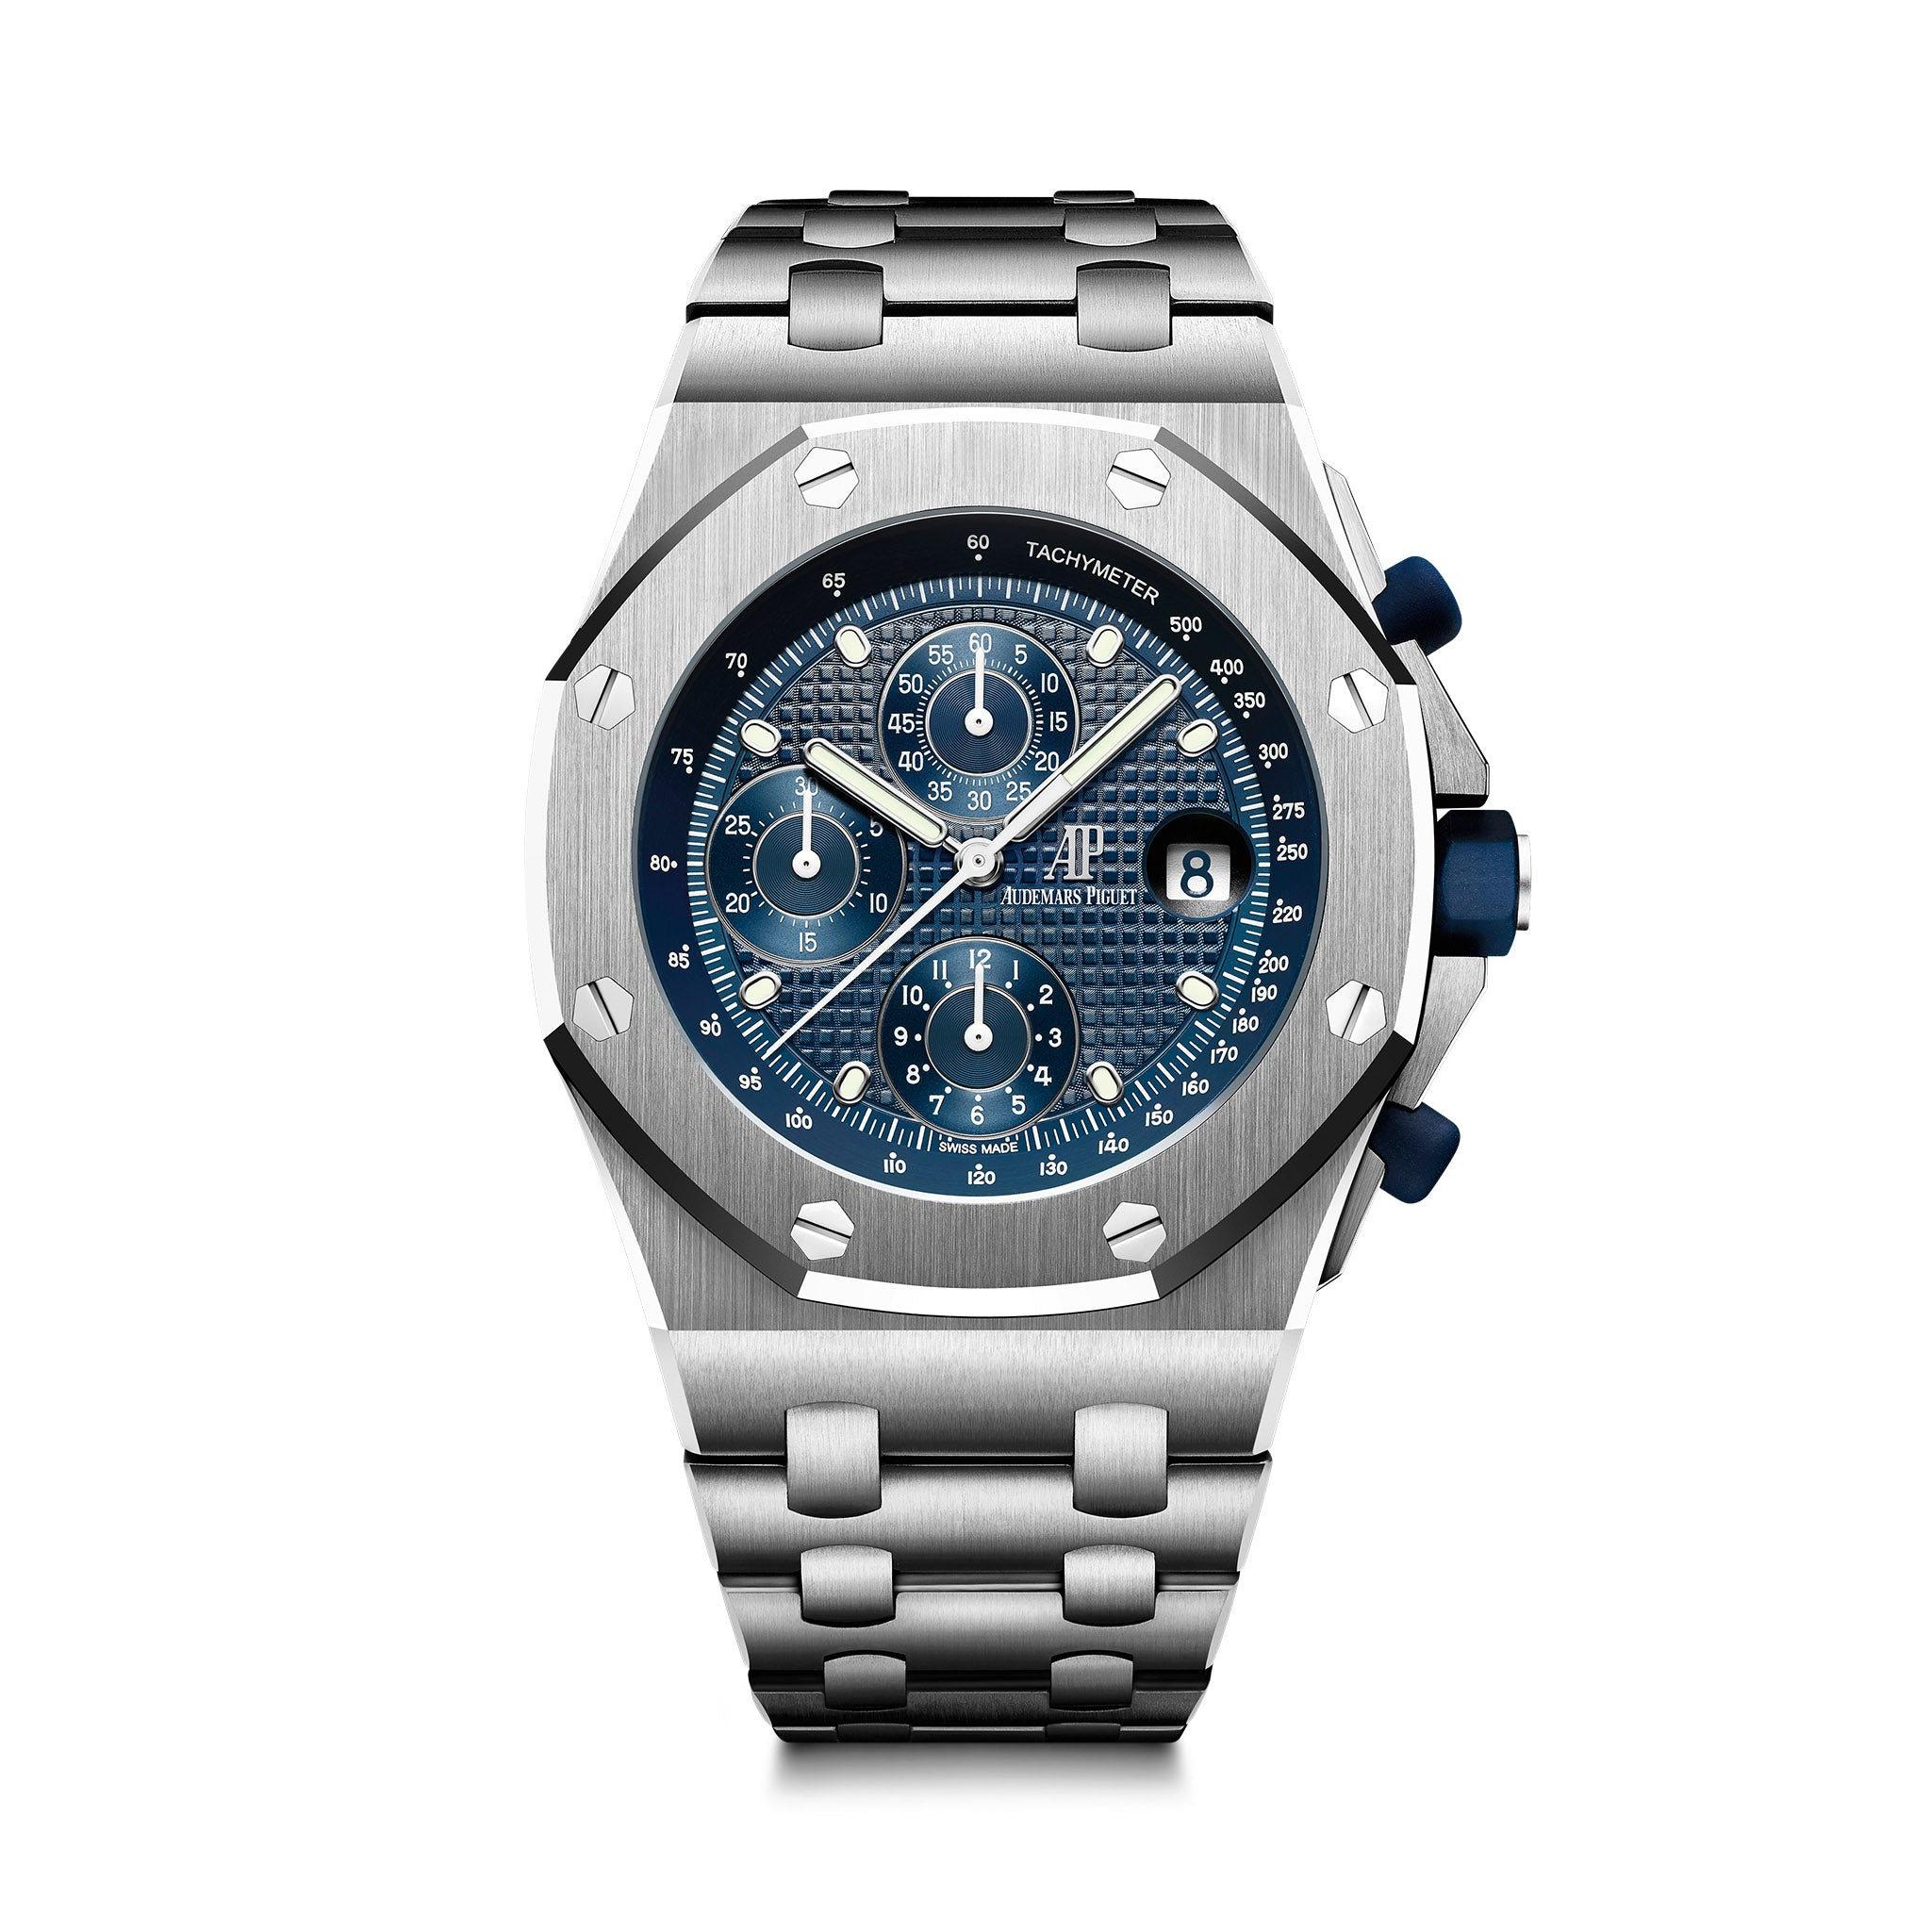 Royal Oak Offshore Chronograph 26237ST.OO.1000ST.01